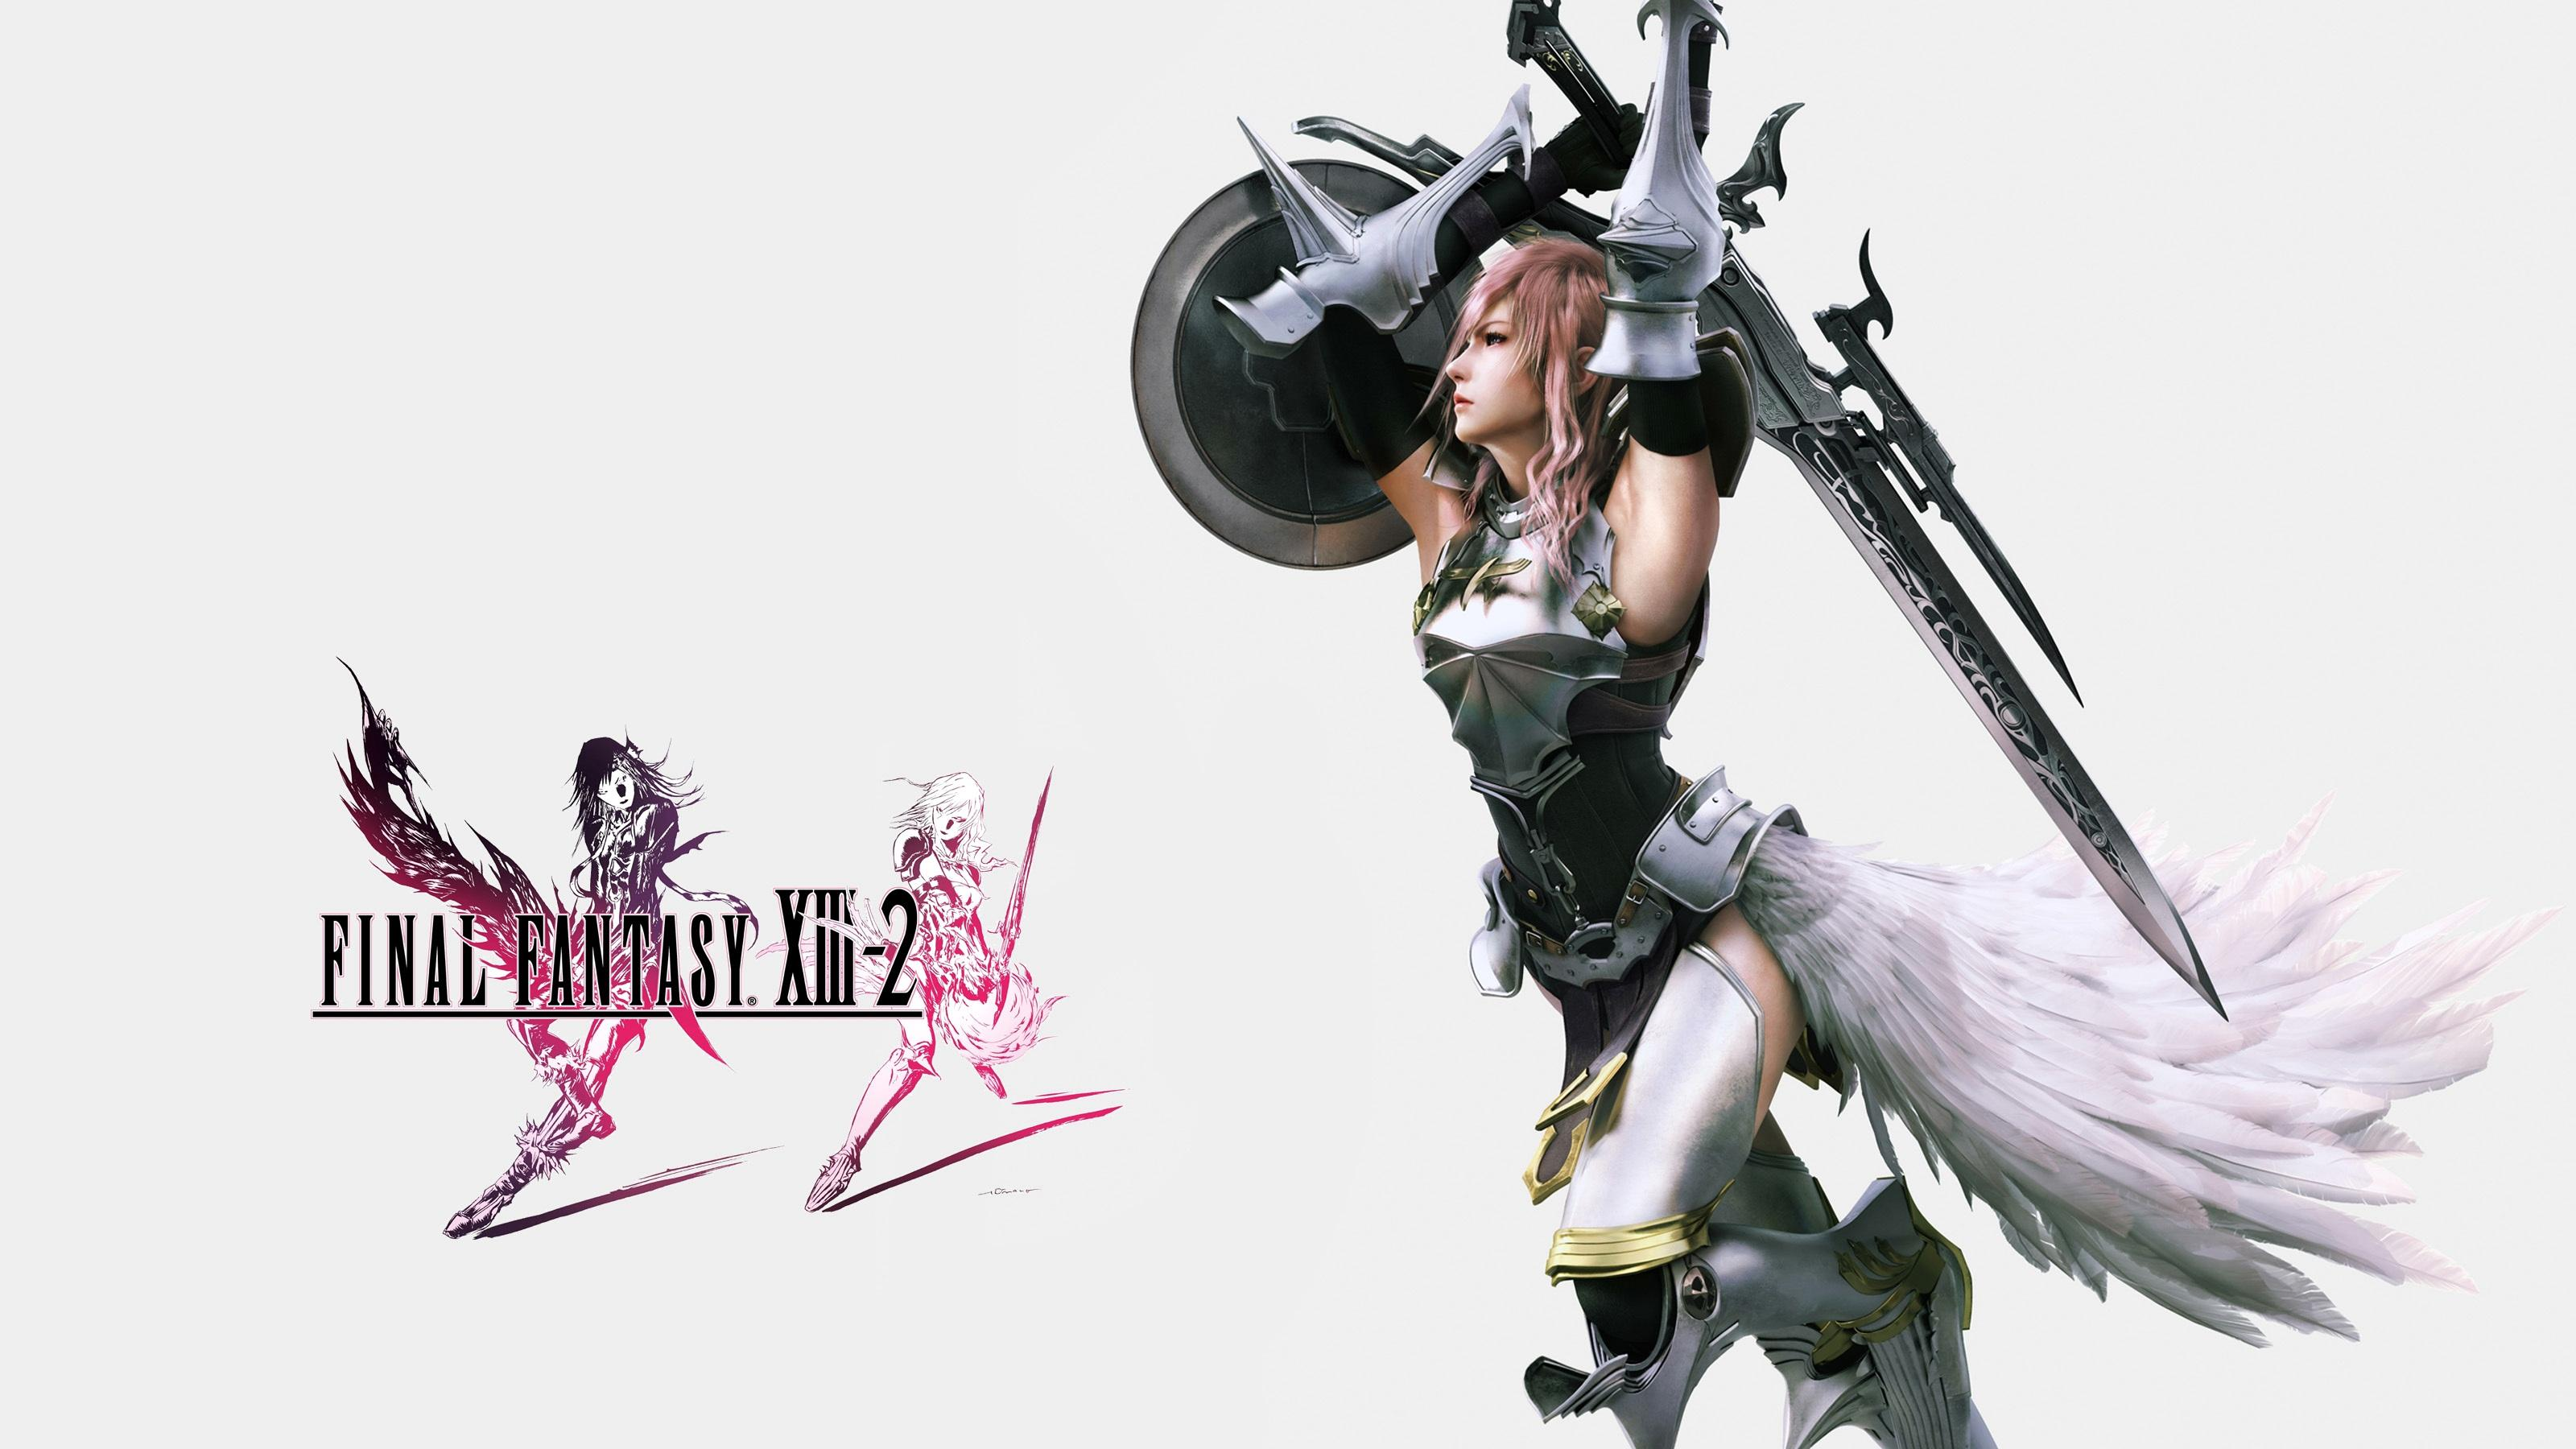 Wallpaper gun video games anime Toy Final Fantasy clothing